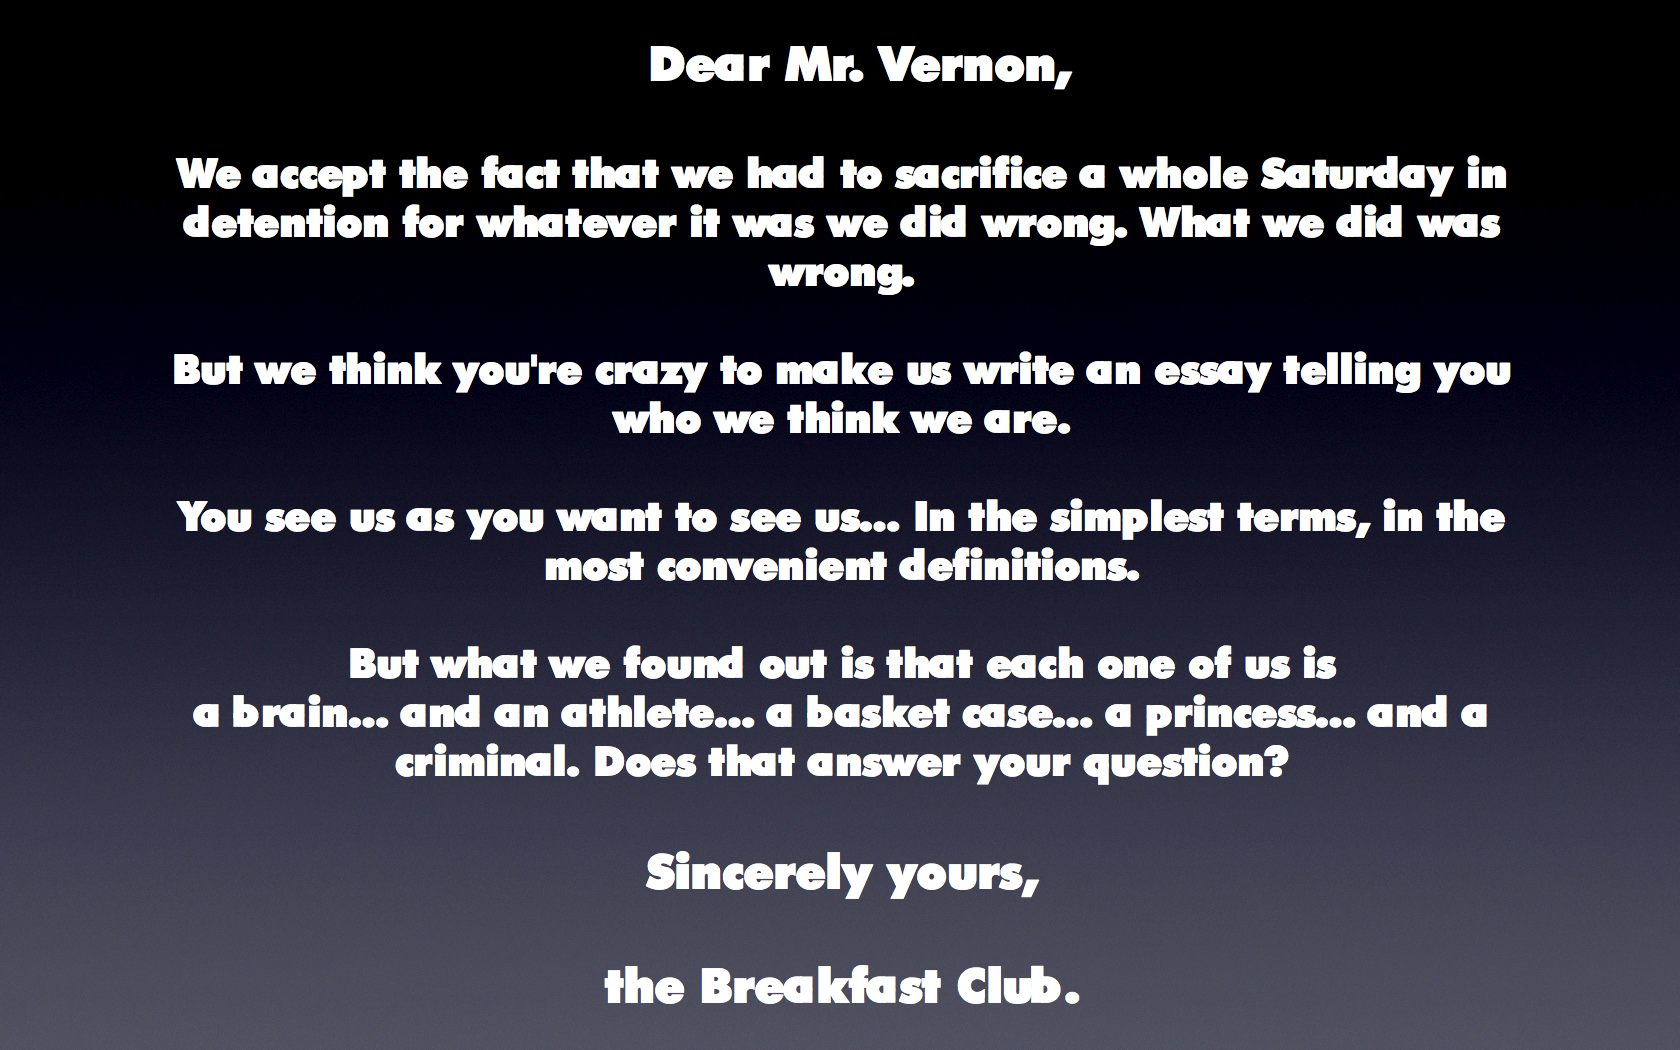 007 The Breakfast Club Essay Example From Jacksonbig On Movie Brians Final Questions Breathtaking Scene Introduction Analysis Full